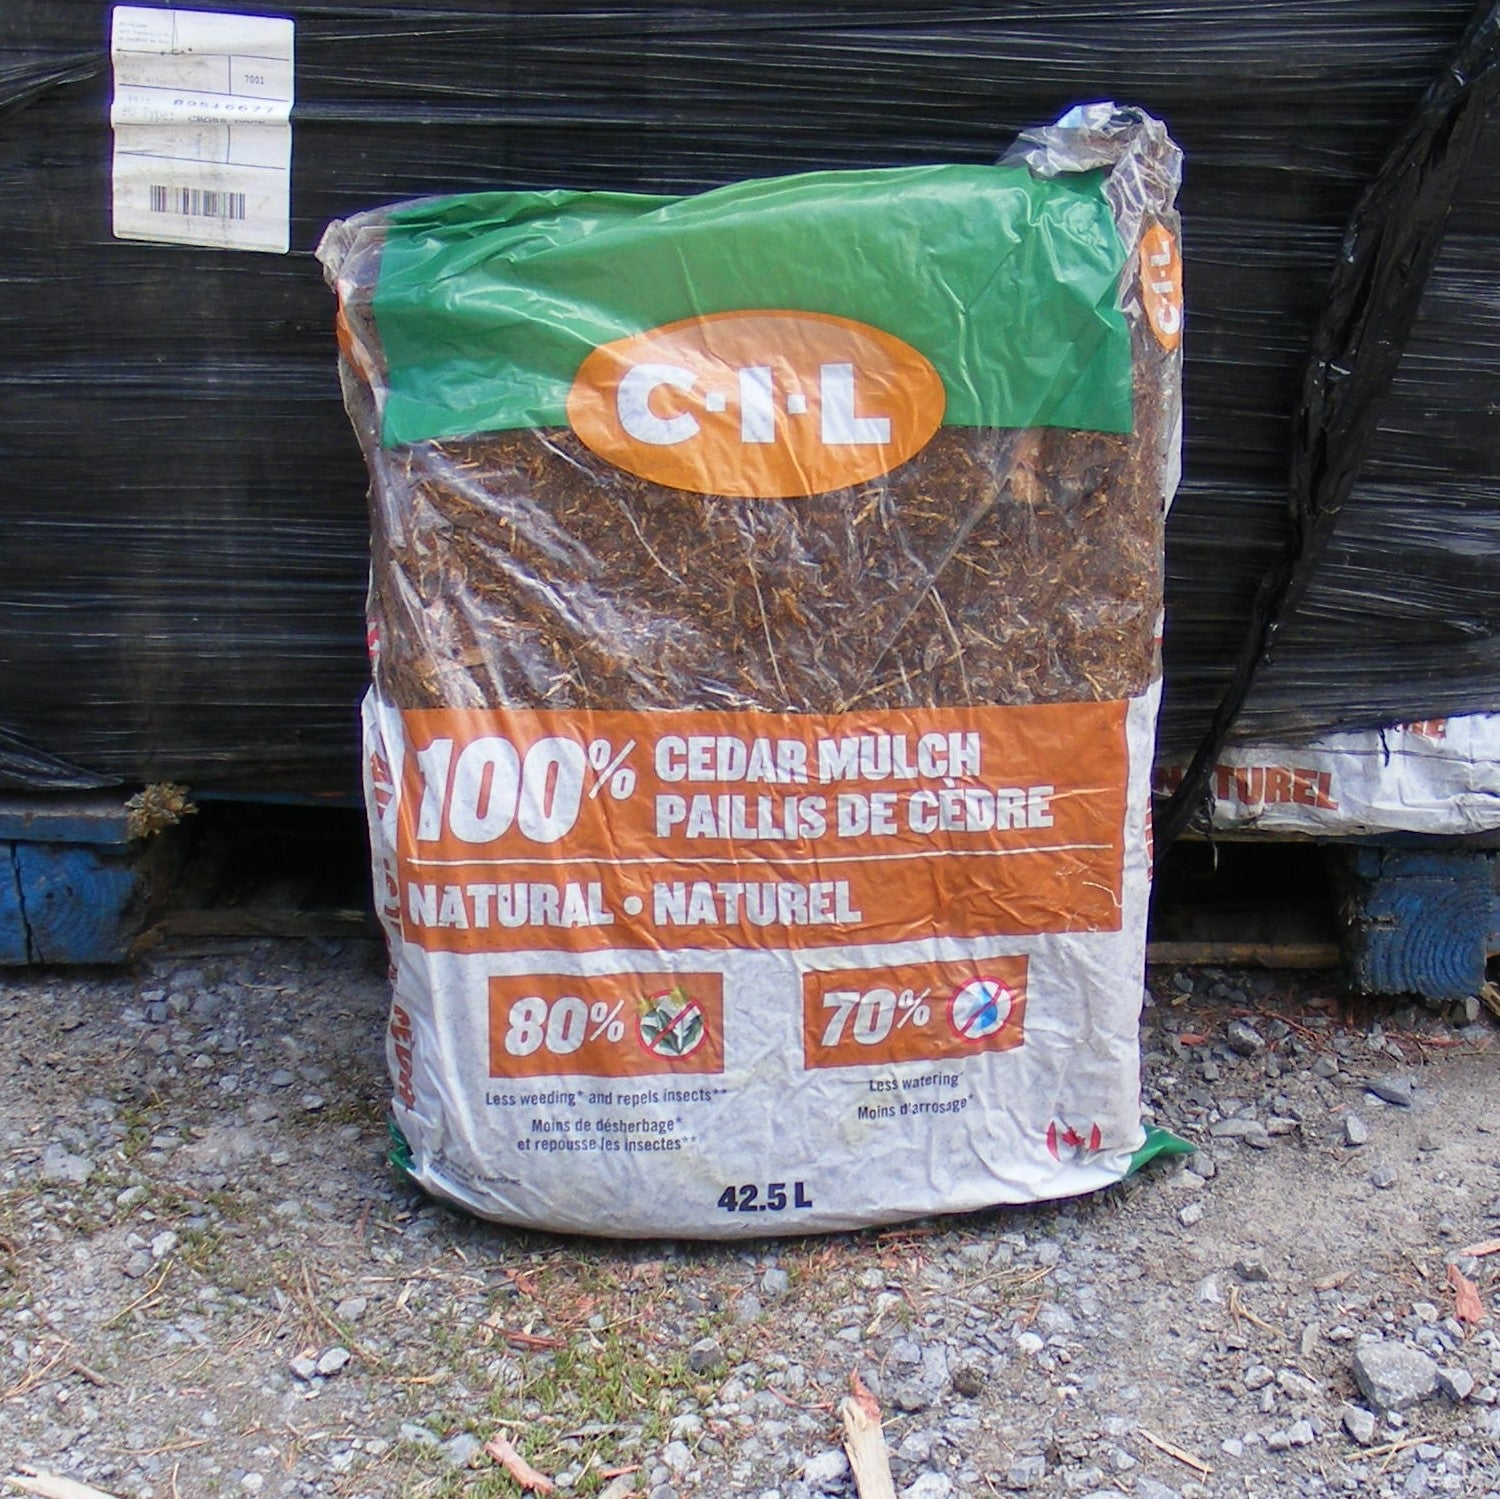 CIL 100% Natural Cedar Mulch 42.5L